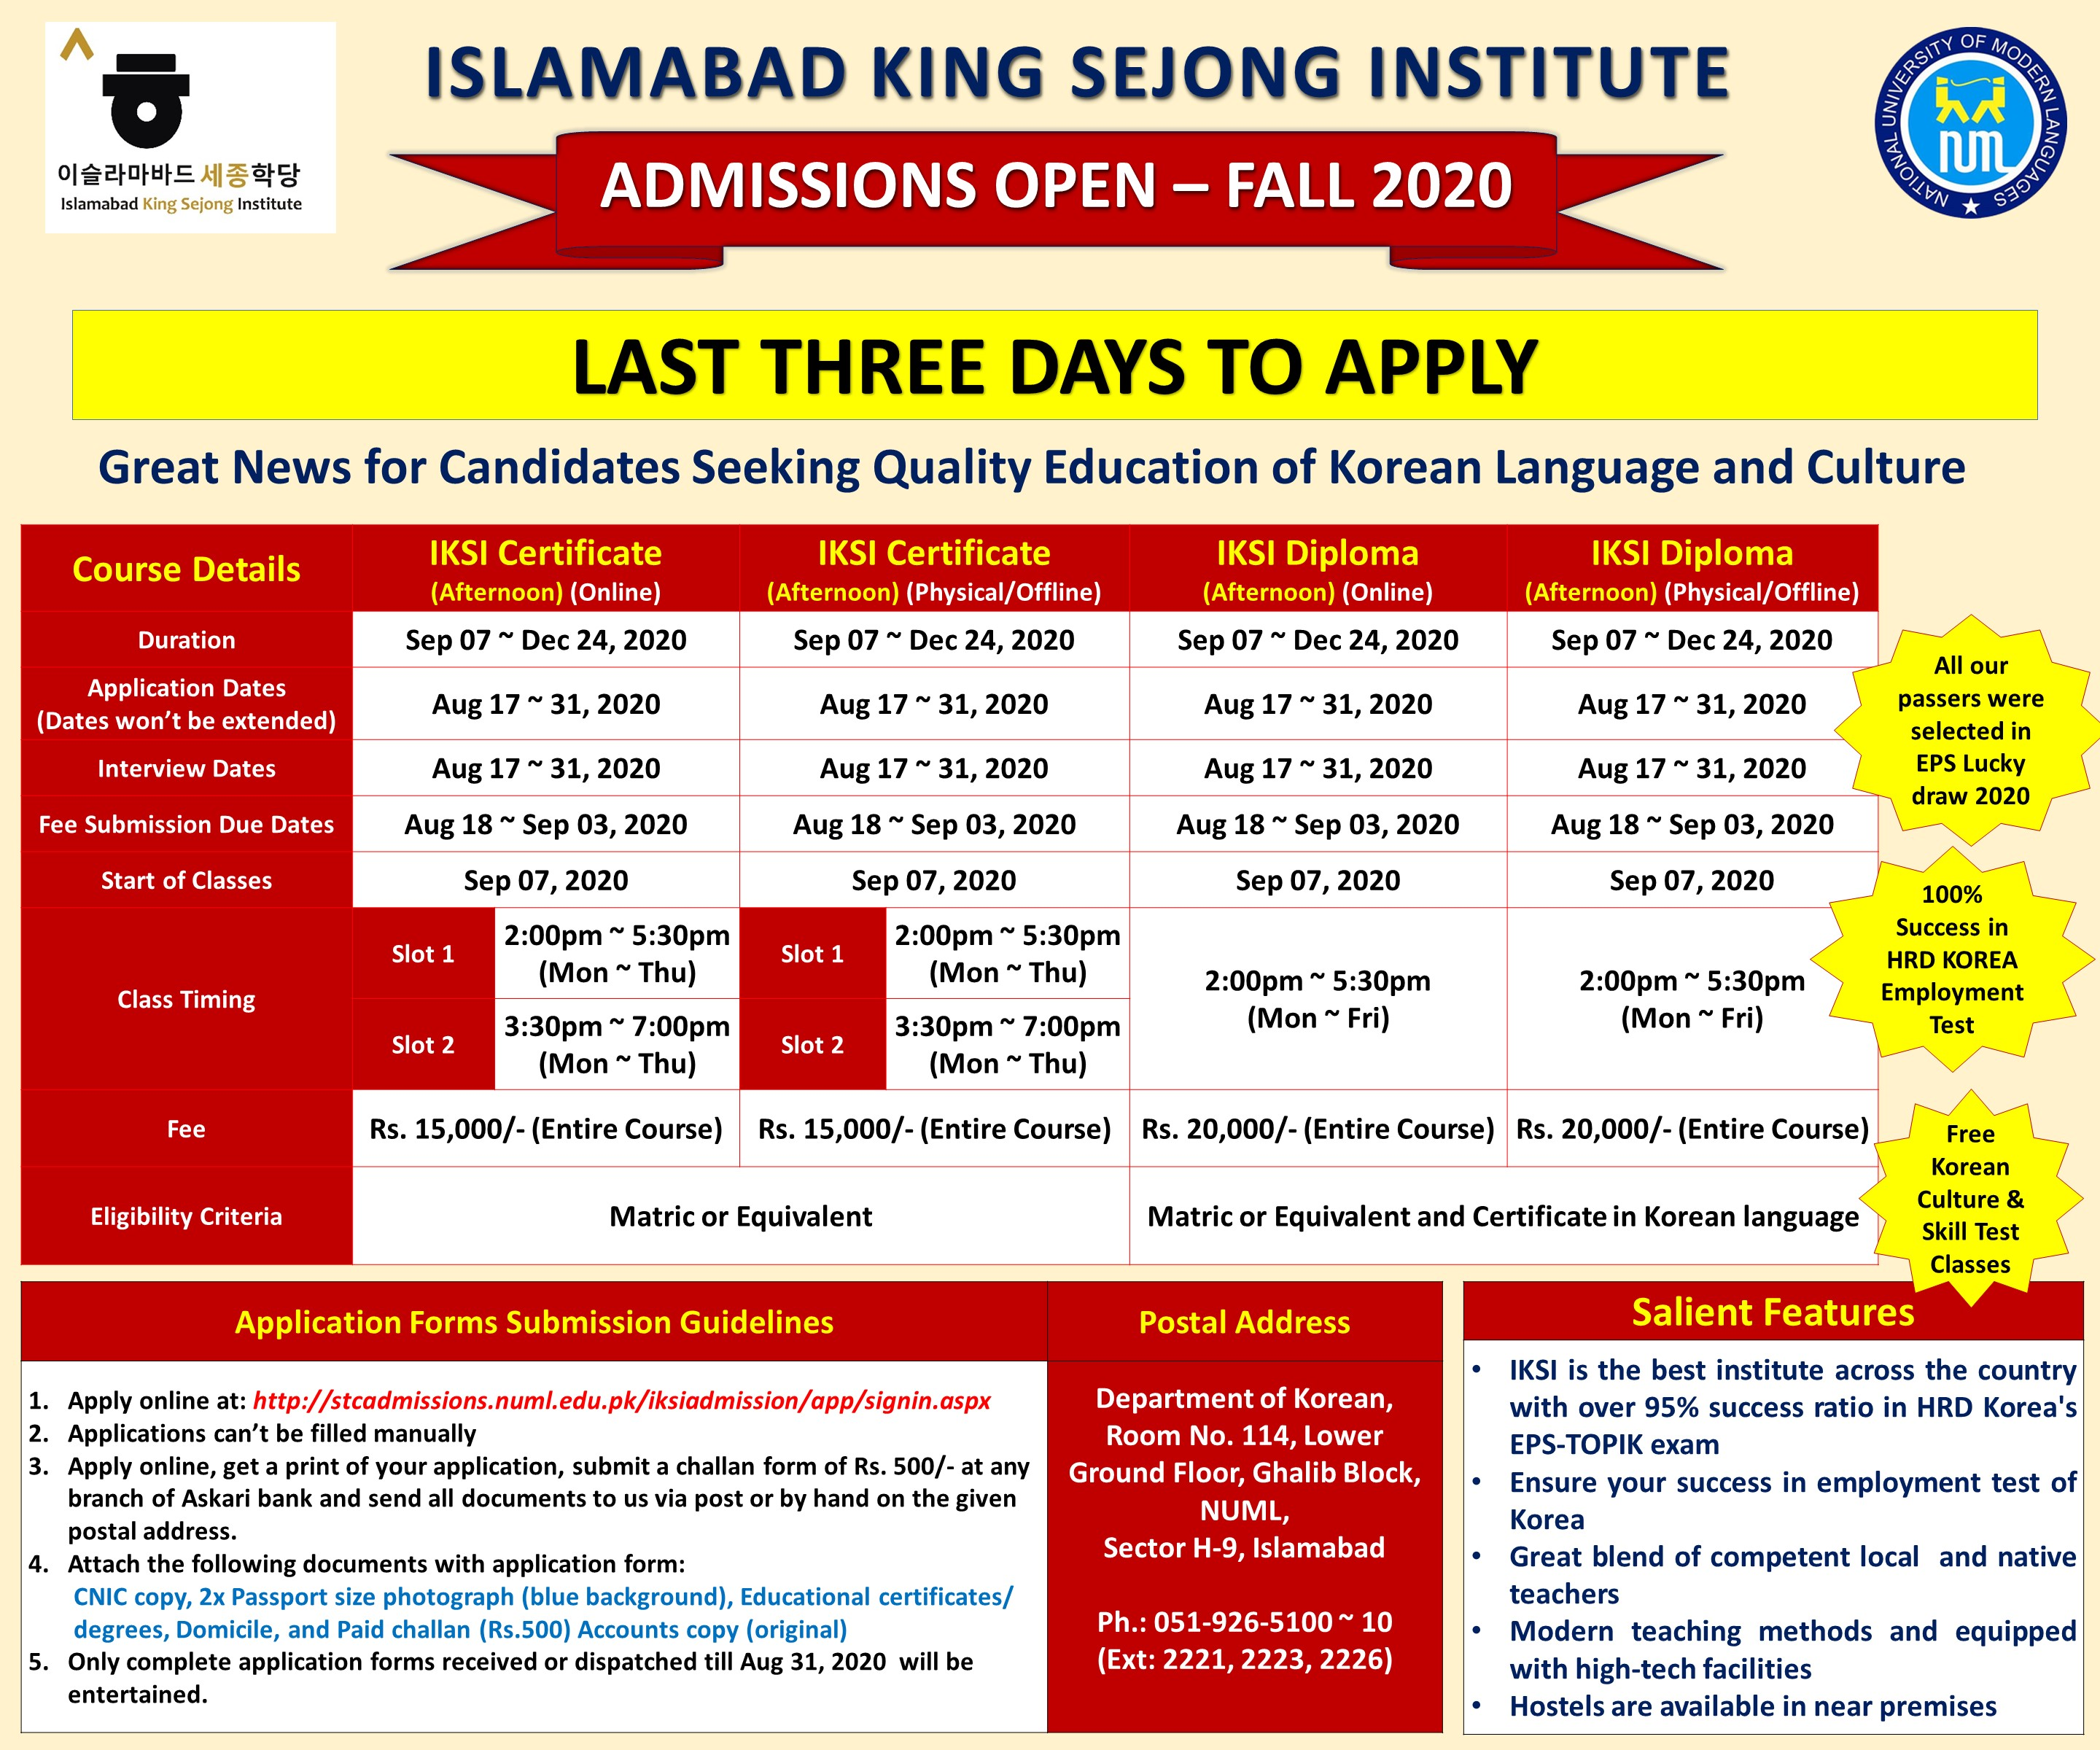 ISLAMABAD KING SEJONG INSTITUTE - FALL 2020 ADMISSION OPEN